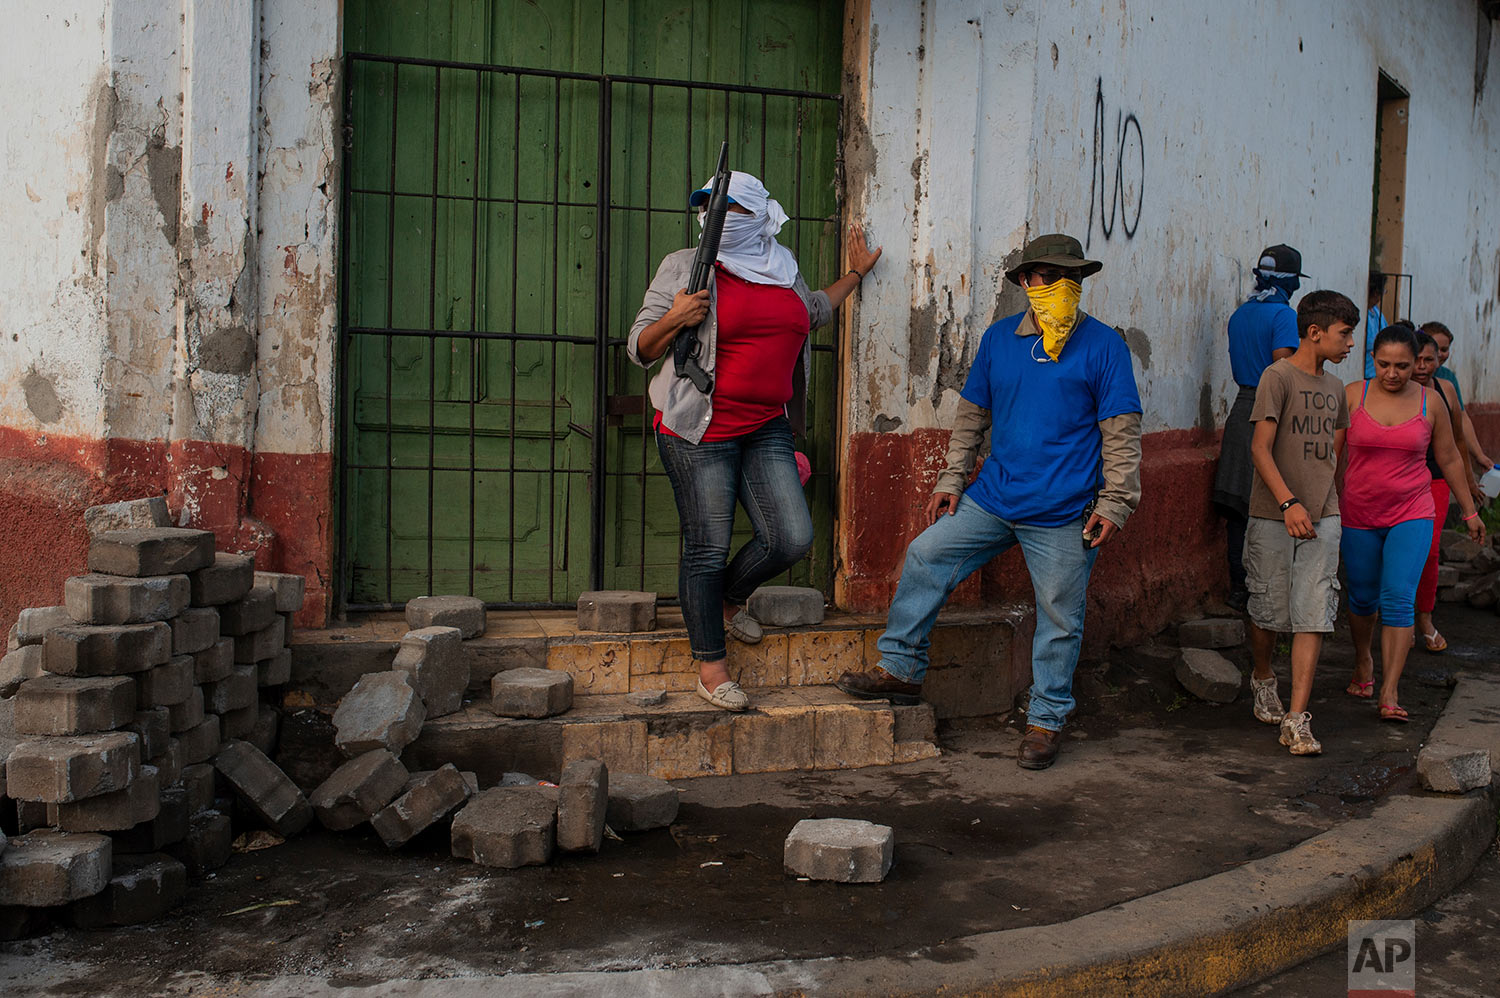 Pro-government Sandinista militia members stand guard at a torn down barricade, which had been set up by anti-government protesters, after police and militias stormed the Monimbo neighborhood of Masaya, Nicaragua, July 17, 2018. Heavily armed police and militias laid siege to and then retook a symbolically important neighborhood that had recently become a center of resistance to President Daniel Ortega's government. (AP Photo/Cristobal Venegas)